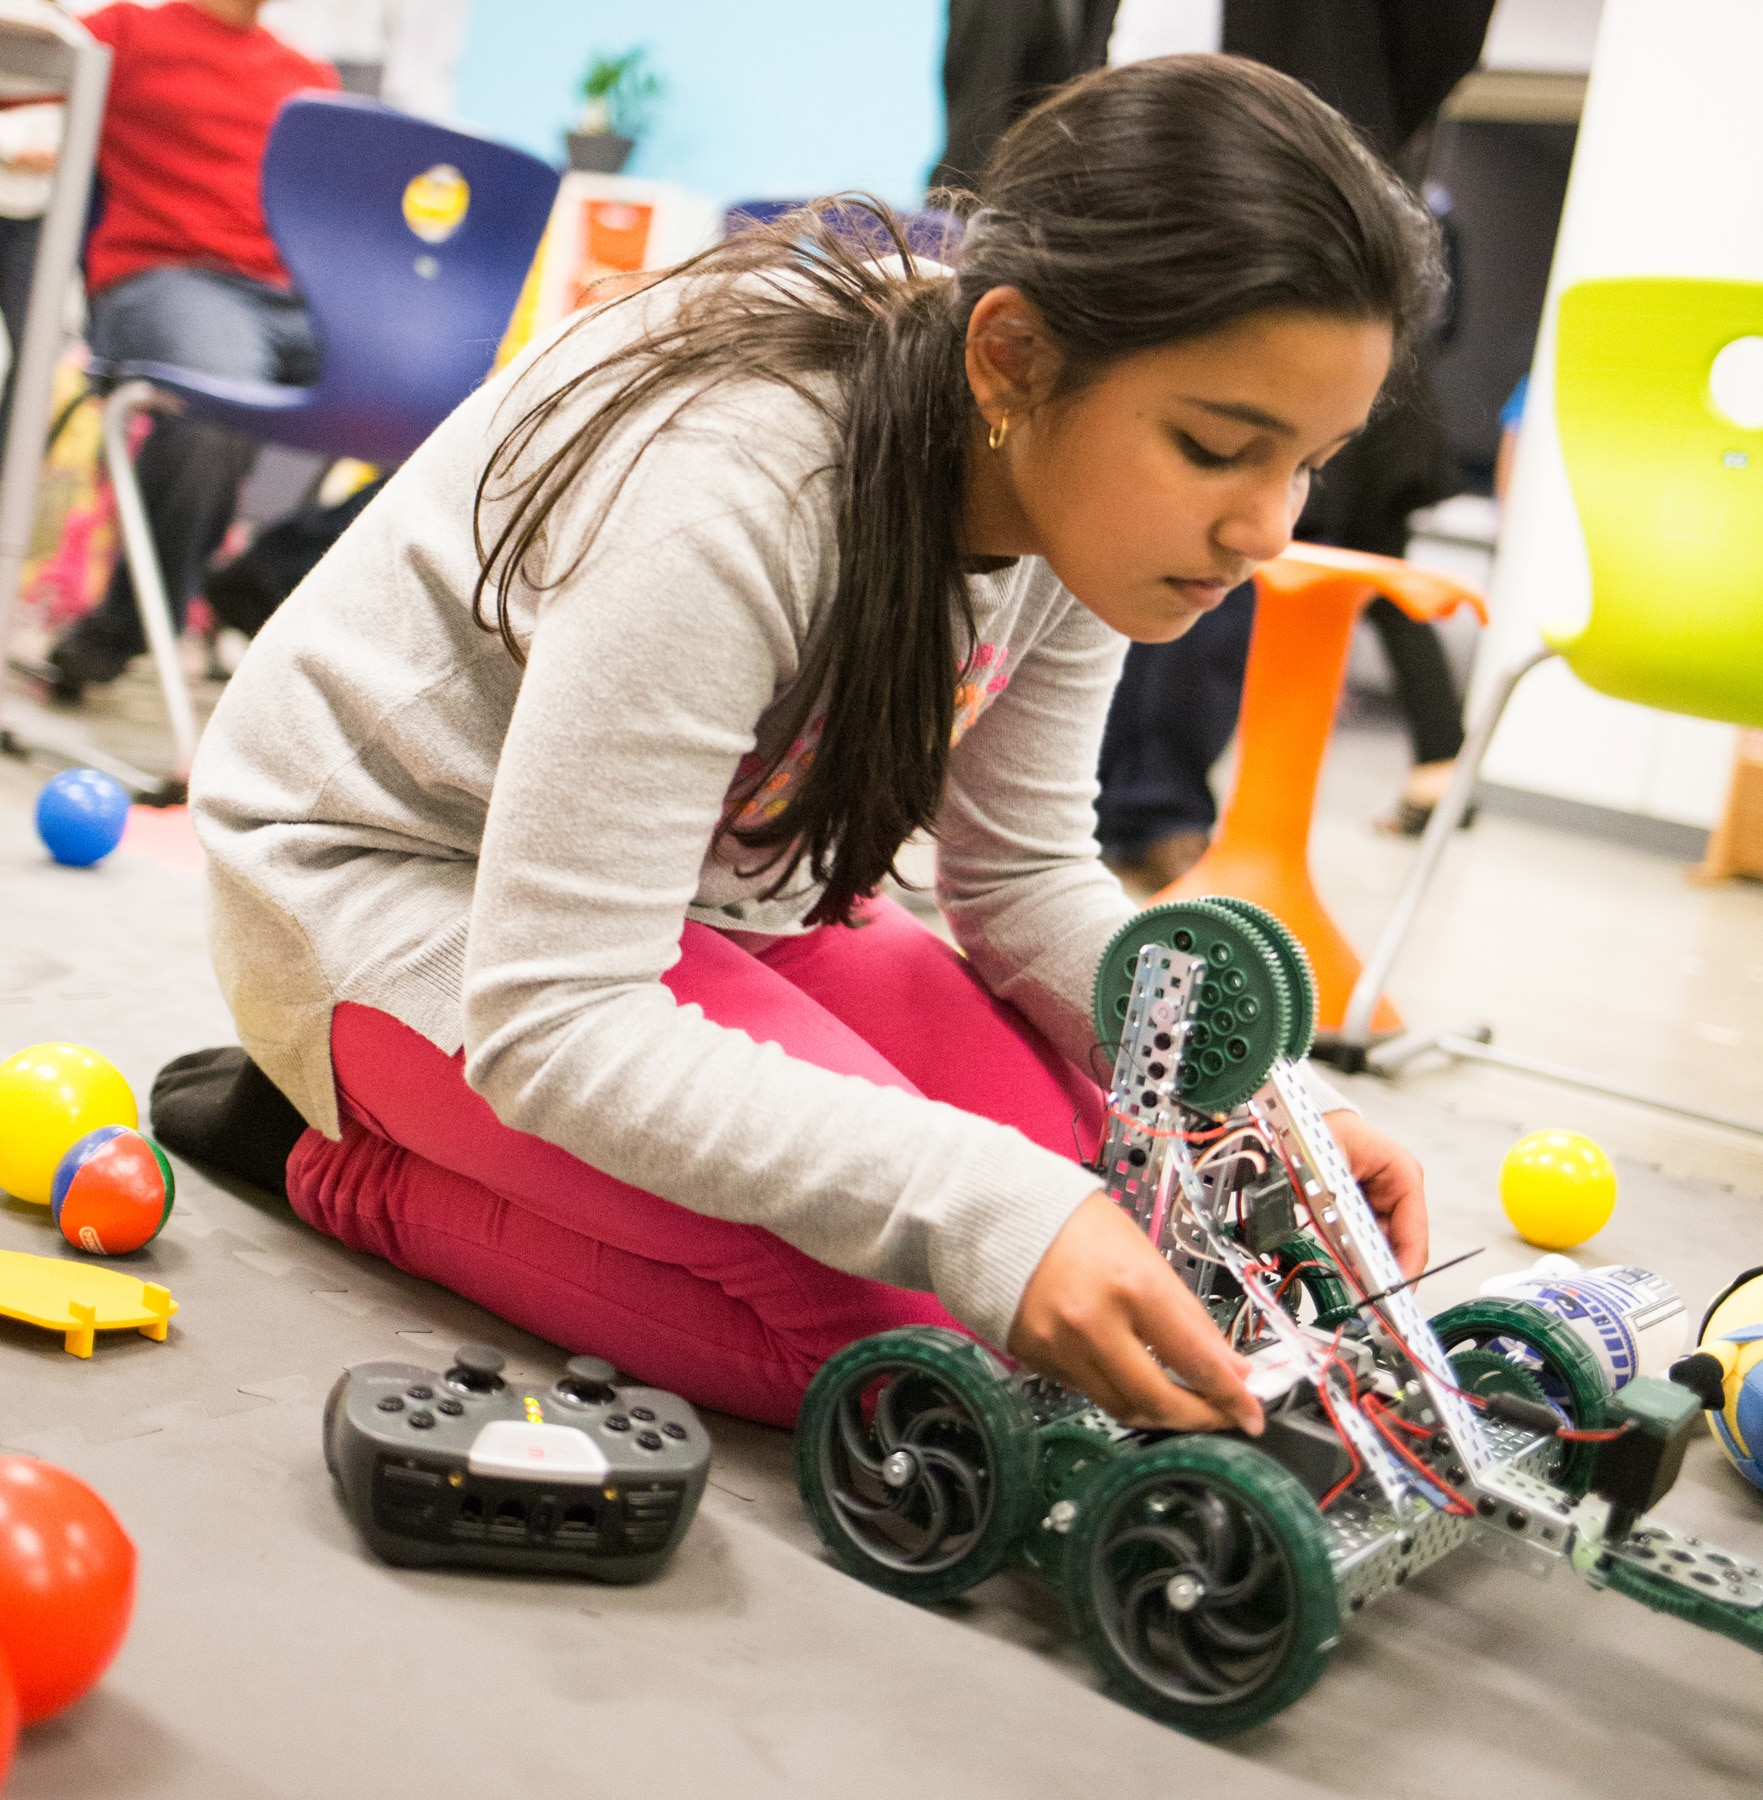 Student adjusting a remote-controlled car (Courtesy of Khan Academy)